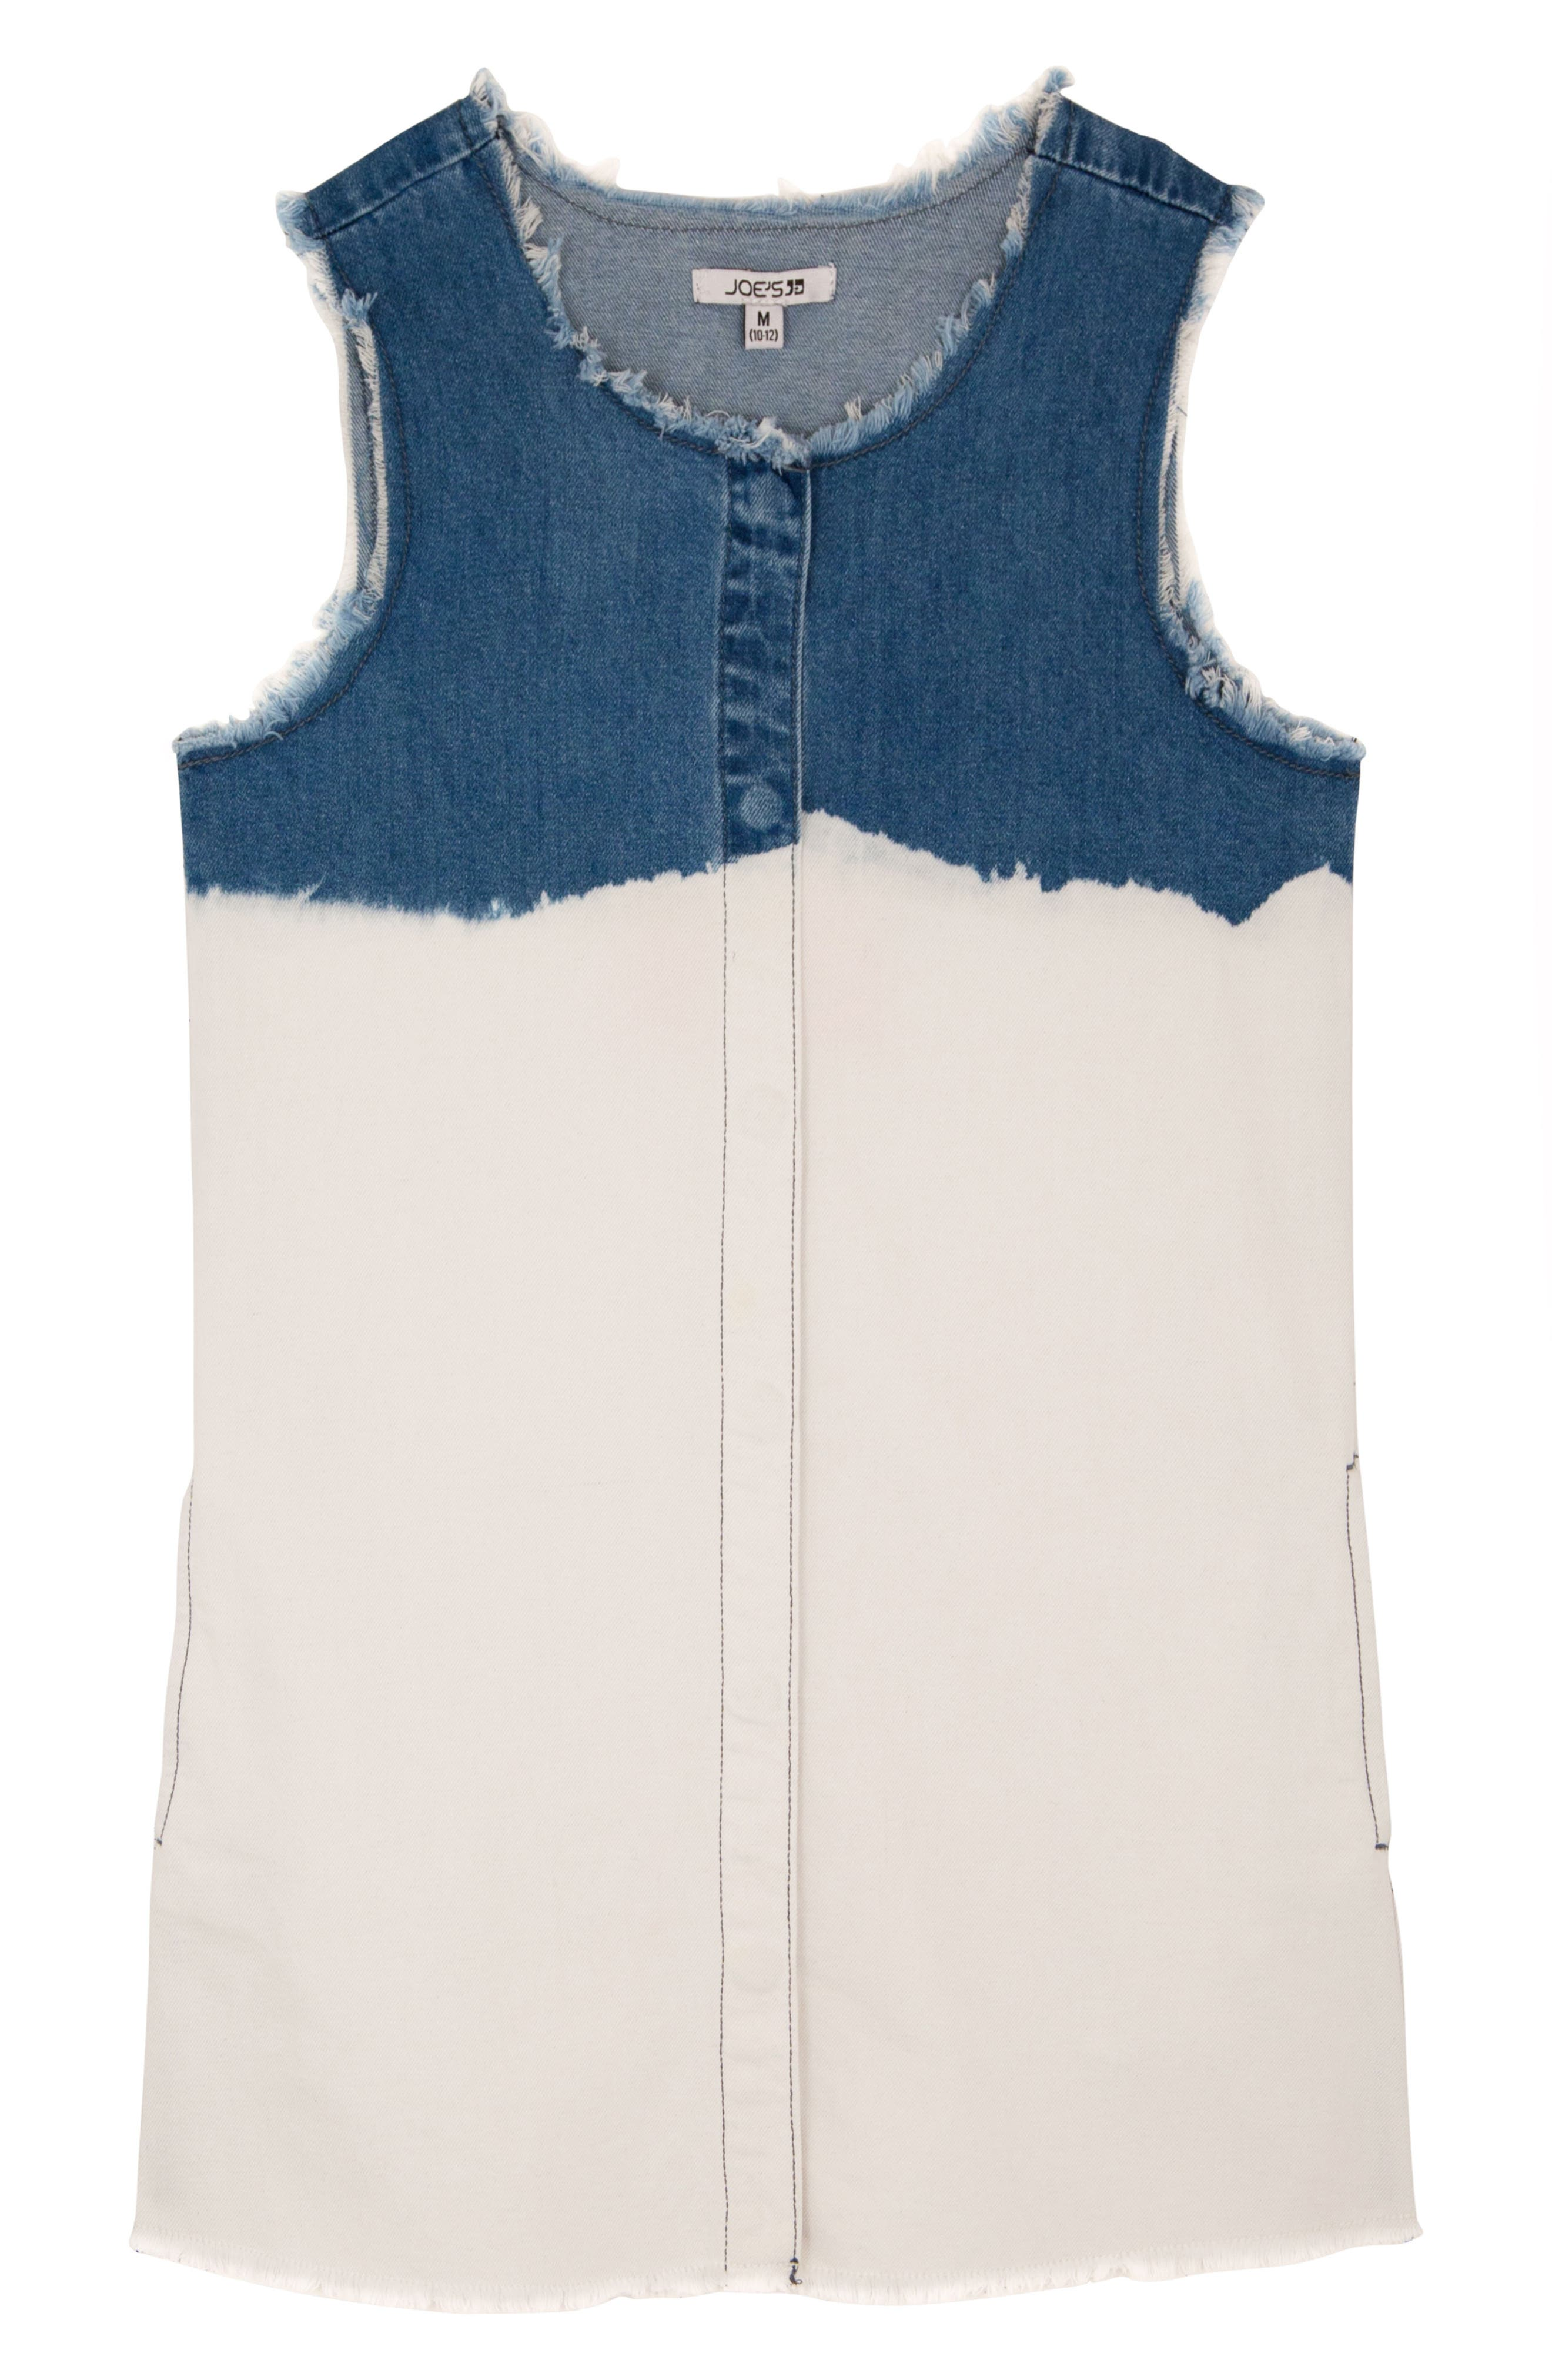 Joe's Fray Bleach Denim Shift Dress,                             Main thumbnail 1, color,                             MAR1-MARINA